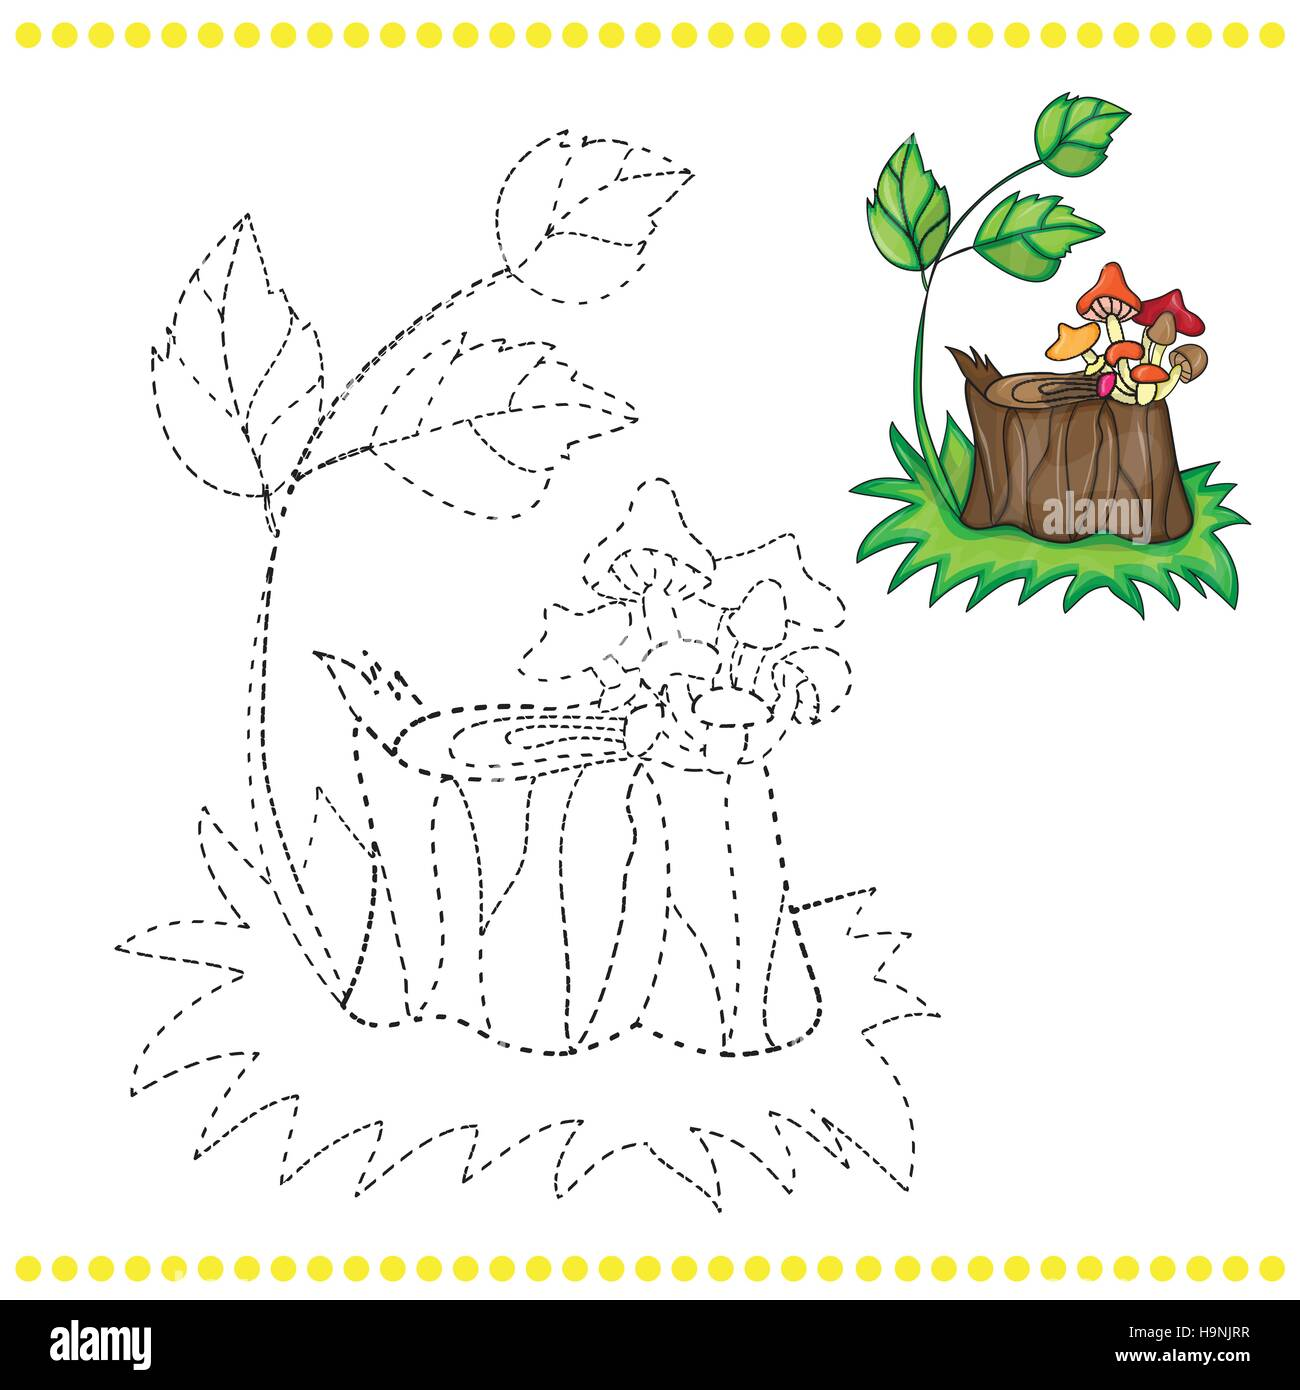 Connect the dots and coloring page - grass, stump and mushrooms - Stock Vector